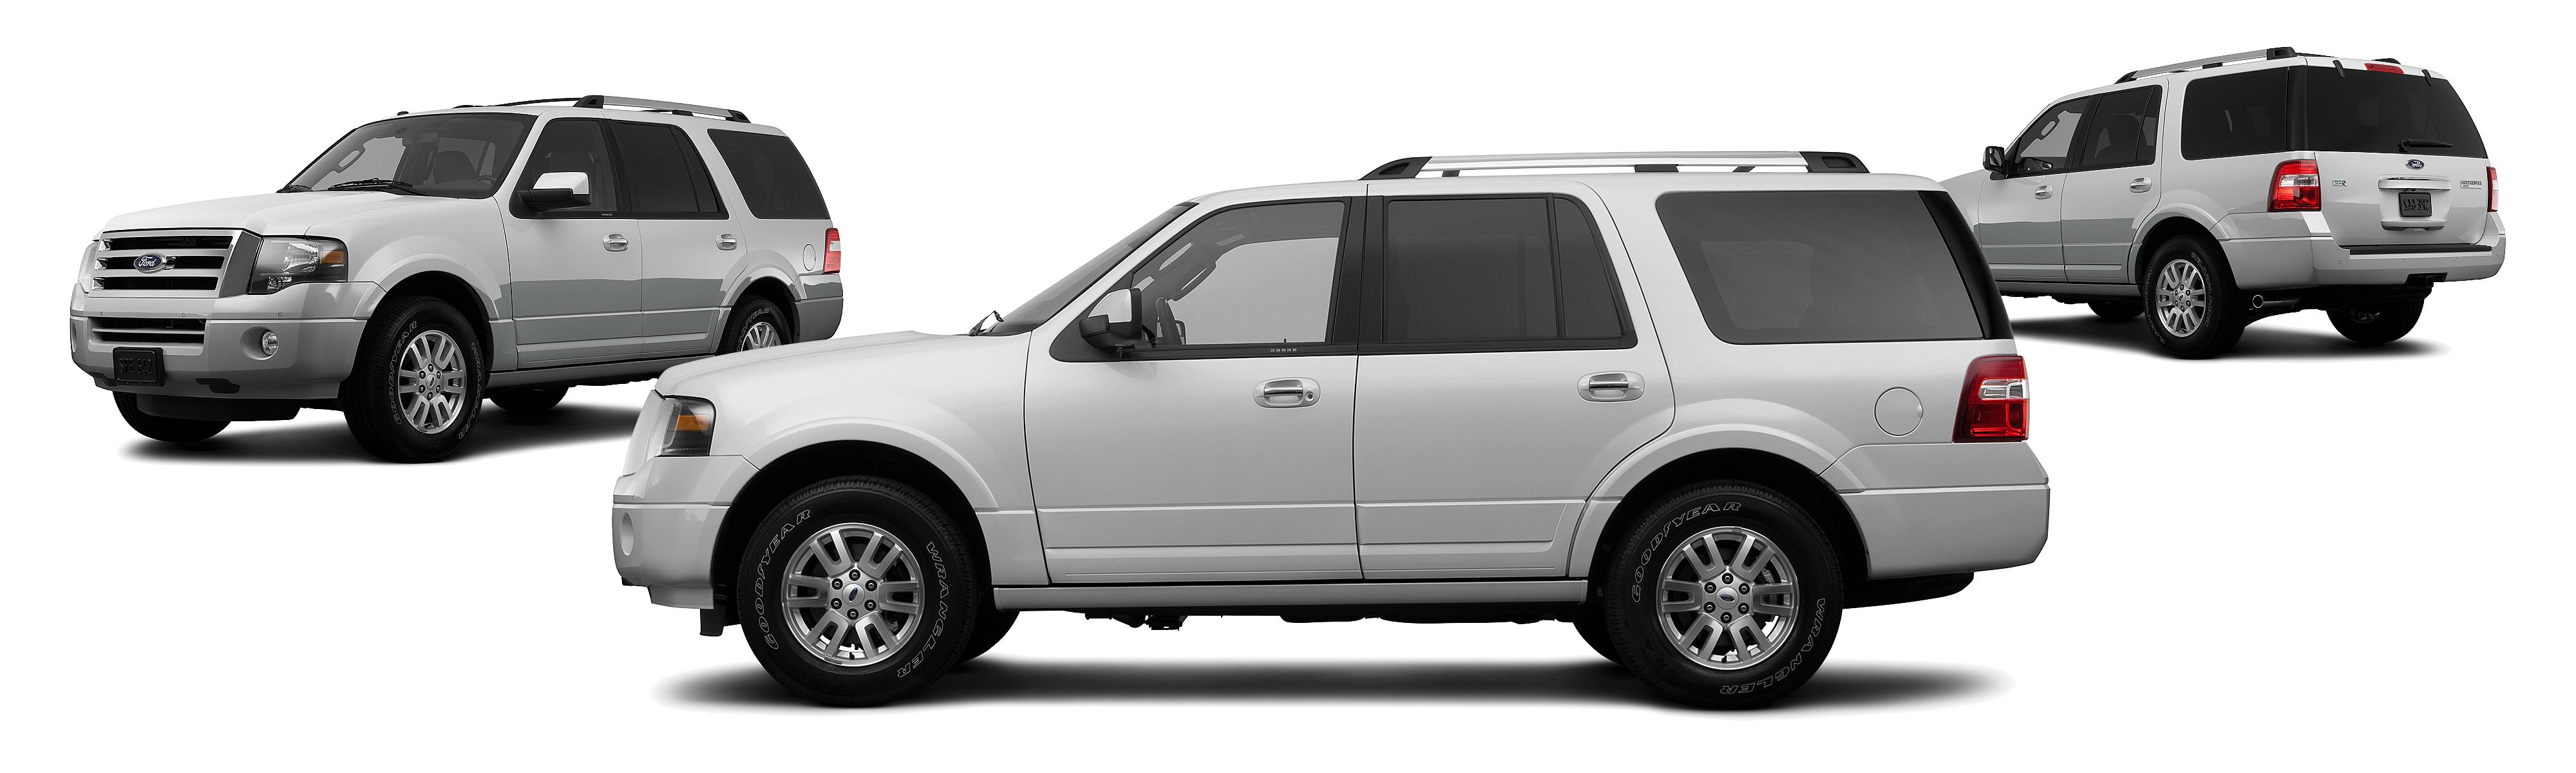 groovecar metallic large research expedition xl suv ingot composite ford silver